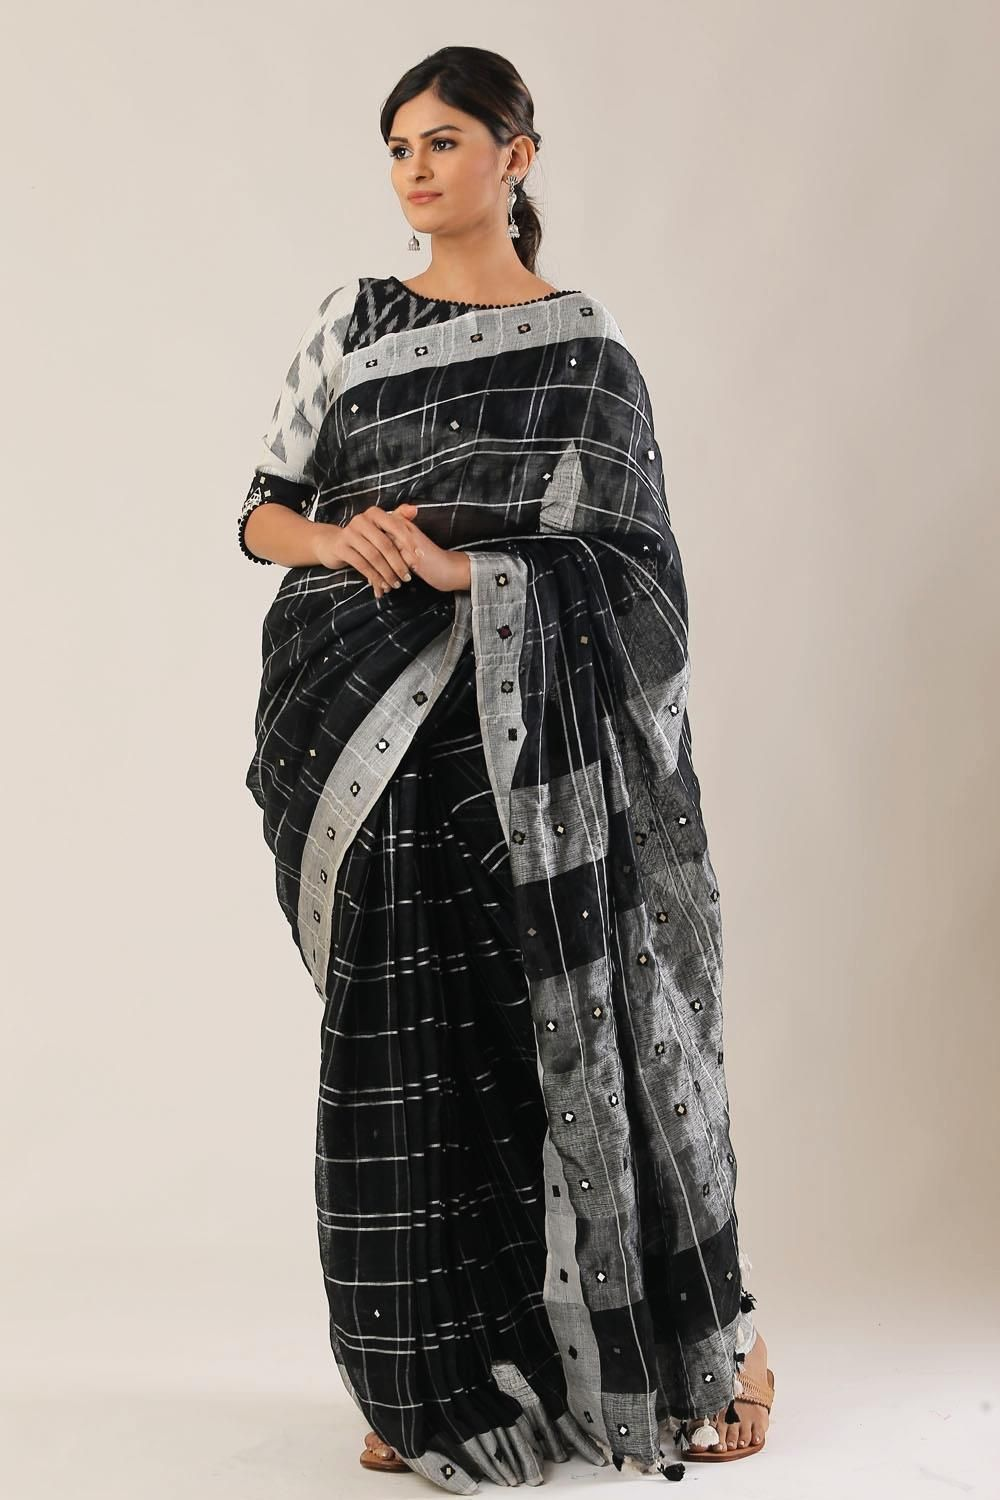 b78f26d574acdd Black checked linen saree with silver border and faux mirrorwork  saree   blouse  houseofblouse  indian  bollywood  style  designer  black  silver ...